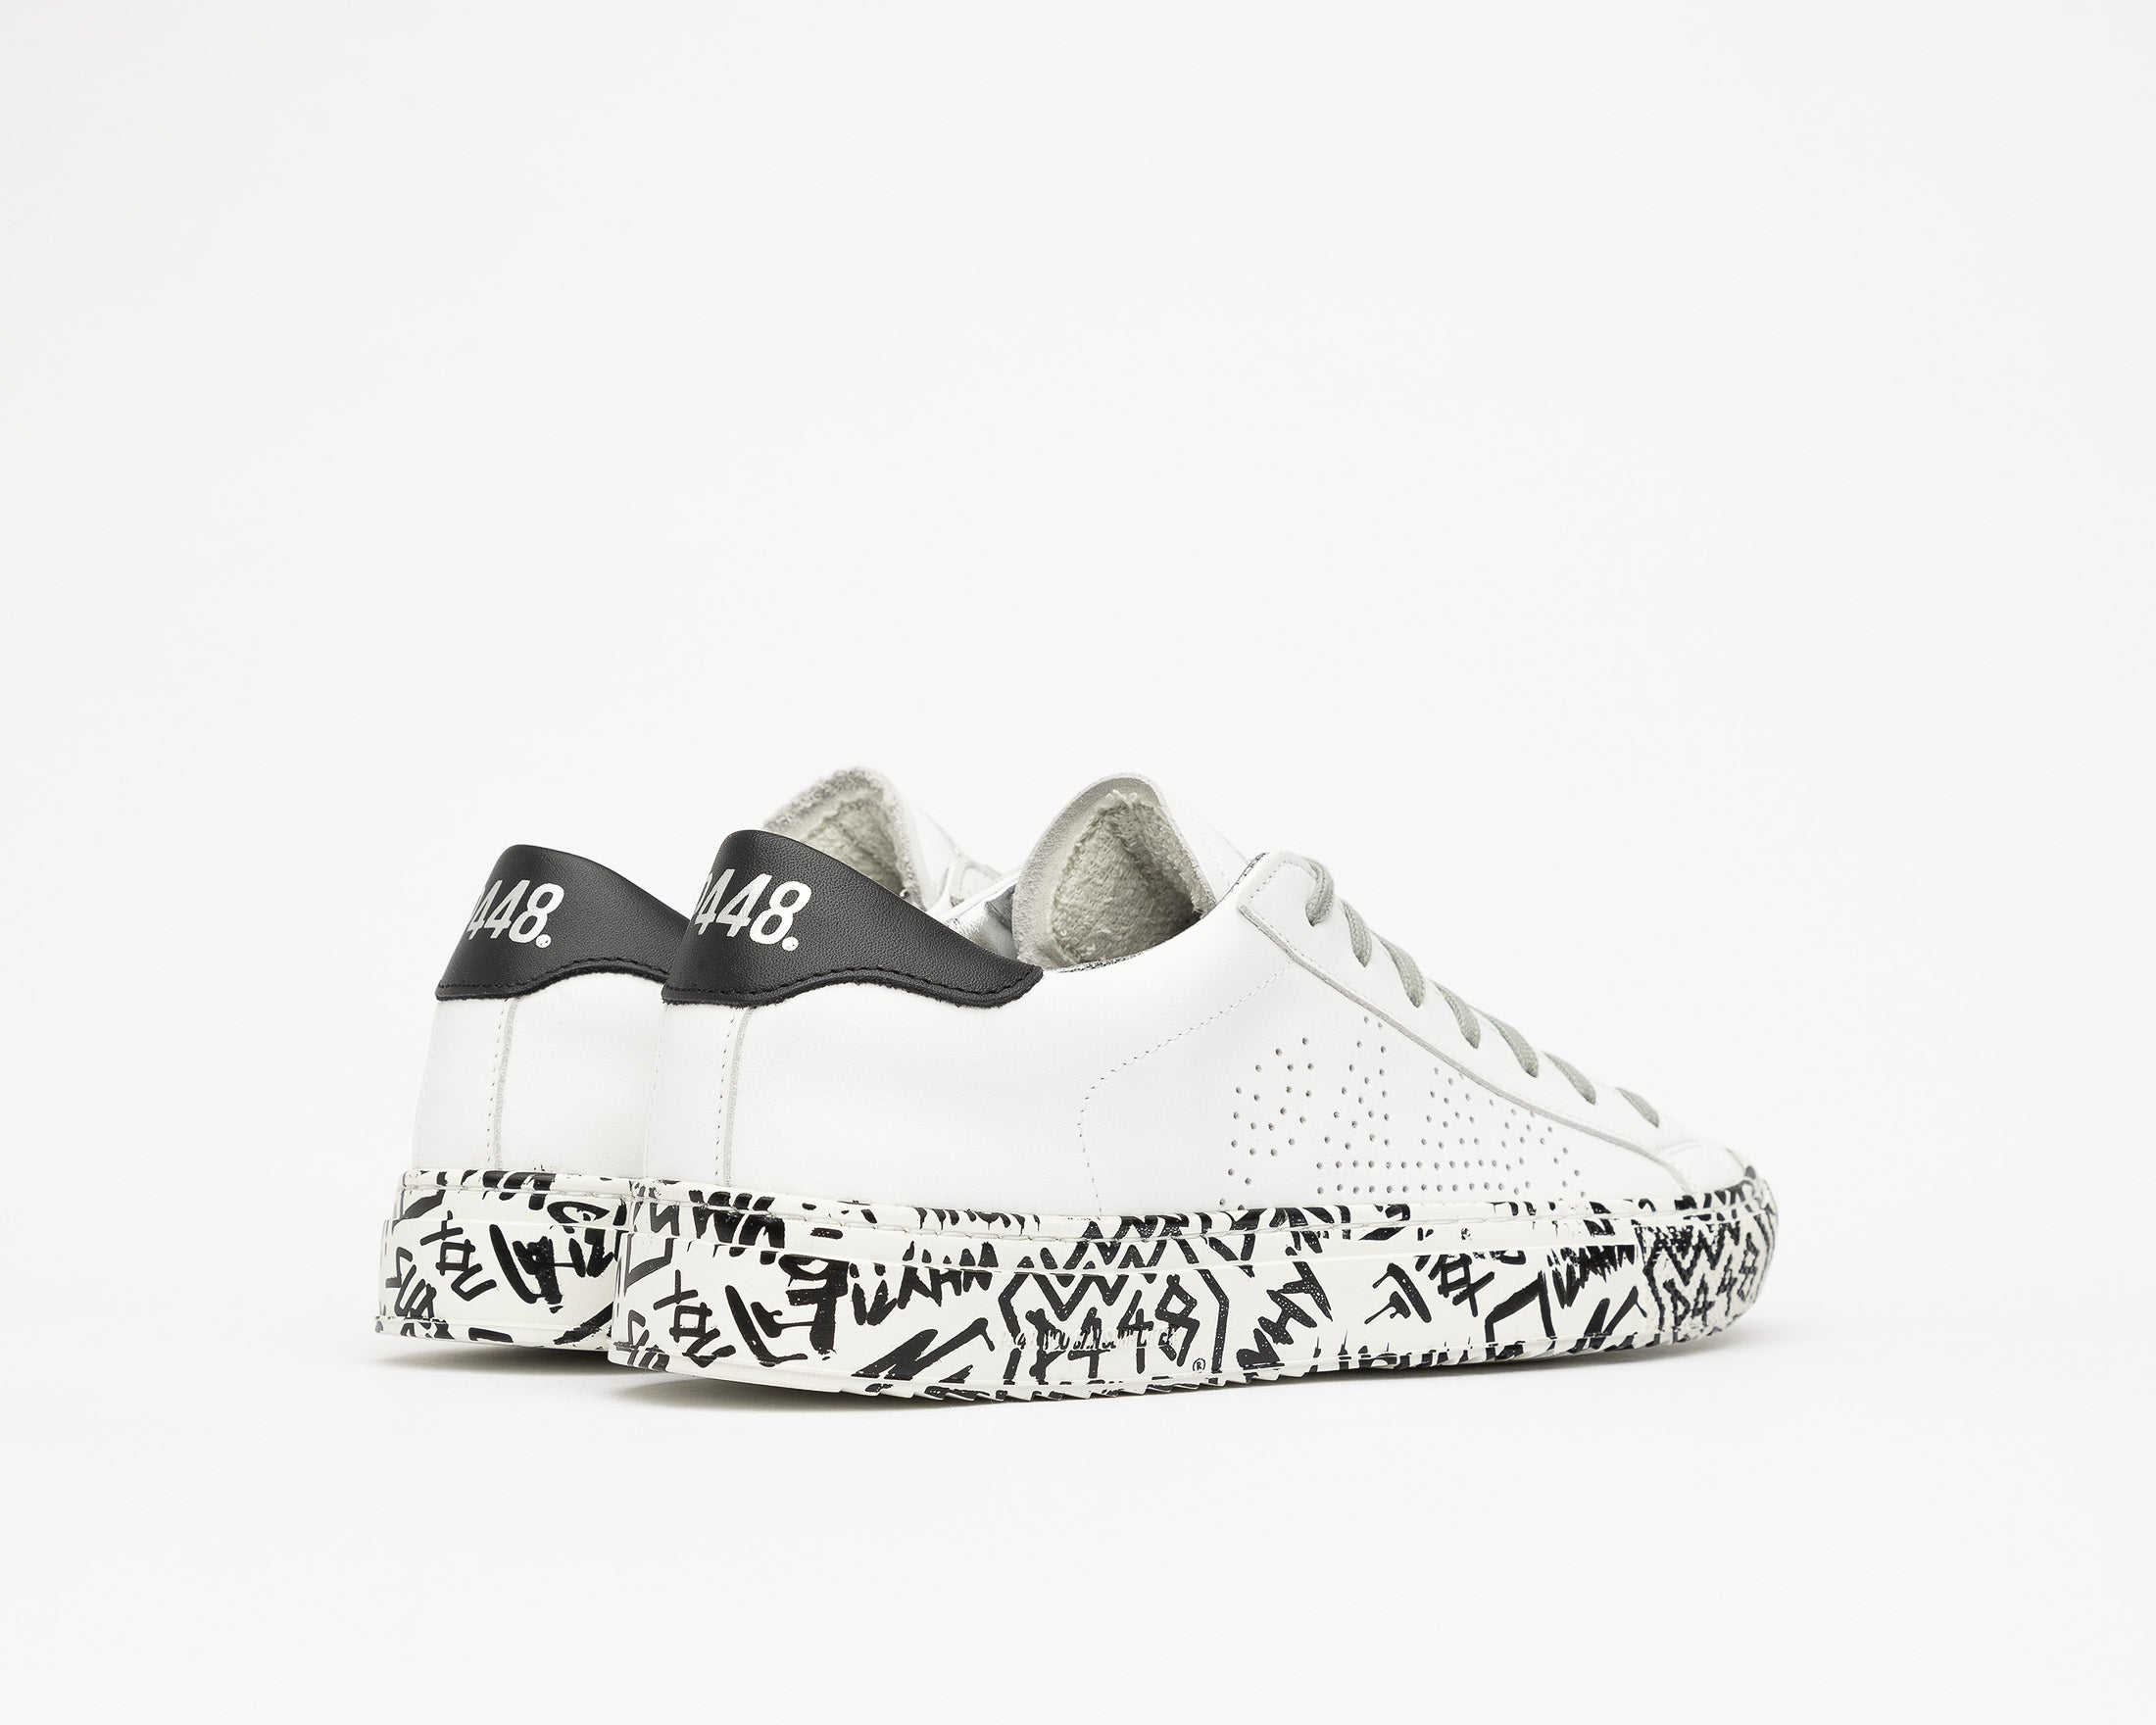 JohnP Low-Top Sneaker in White/P448 Sole - Back